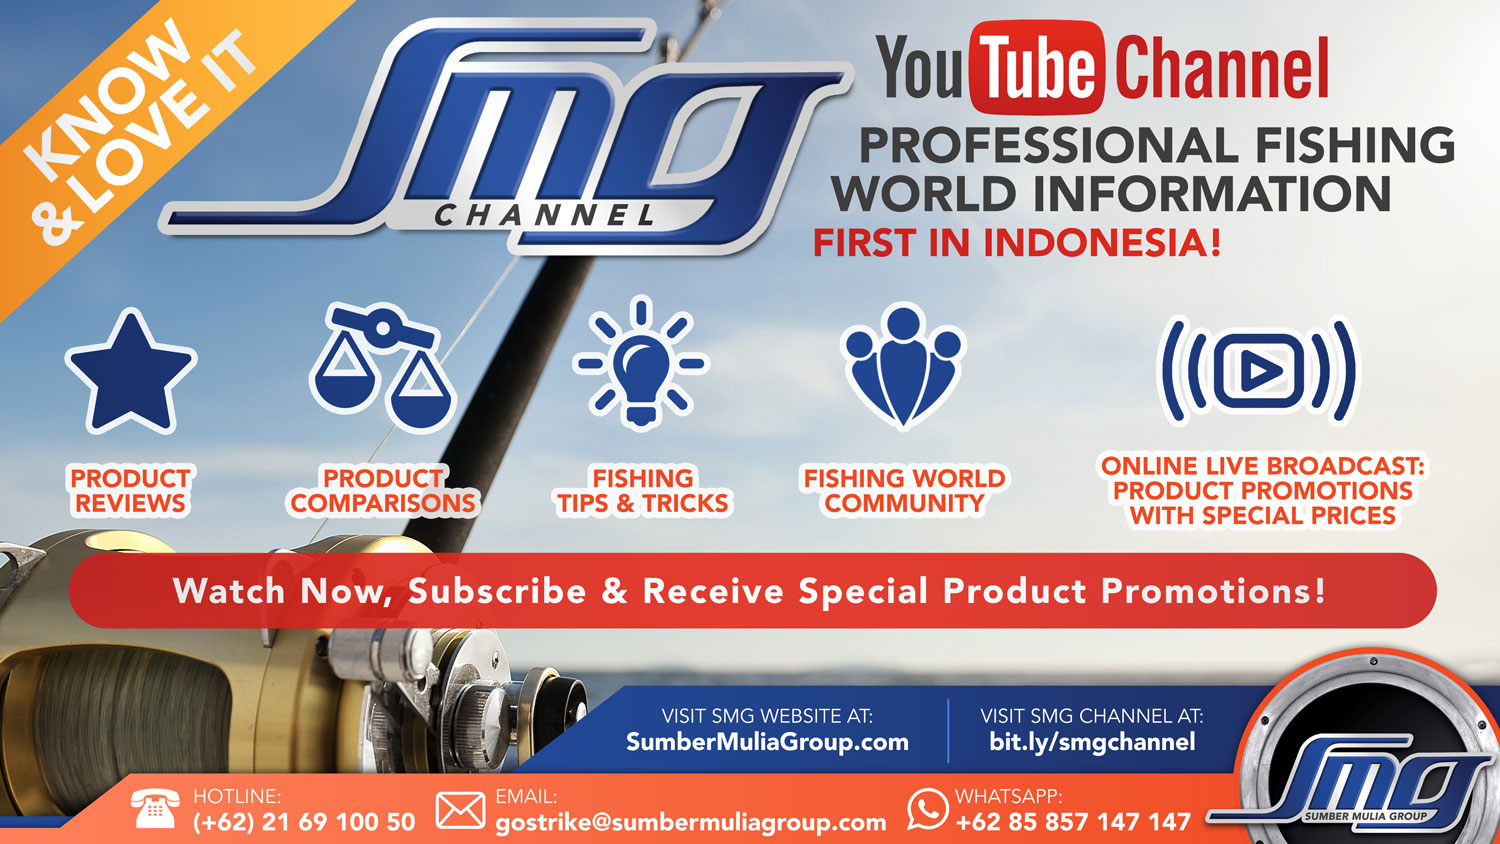 sumber-mulia-group-smg-news-smg-channel